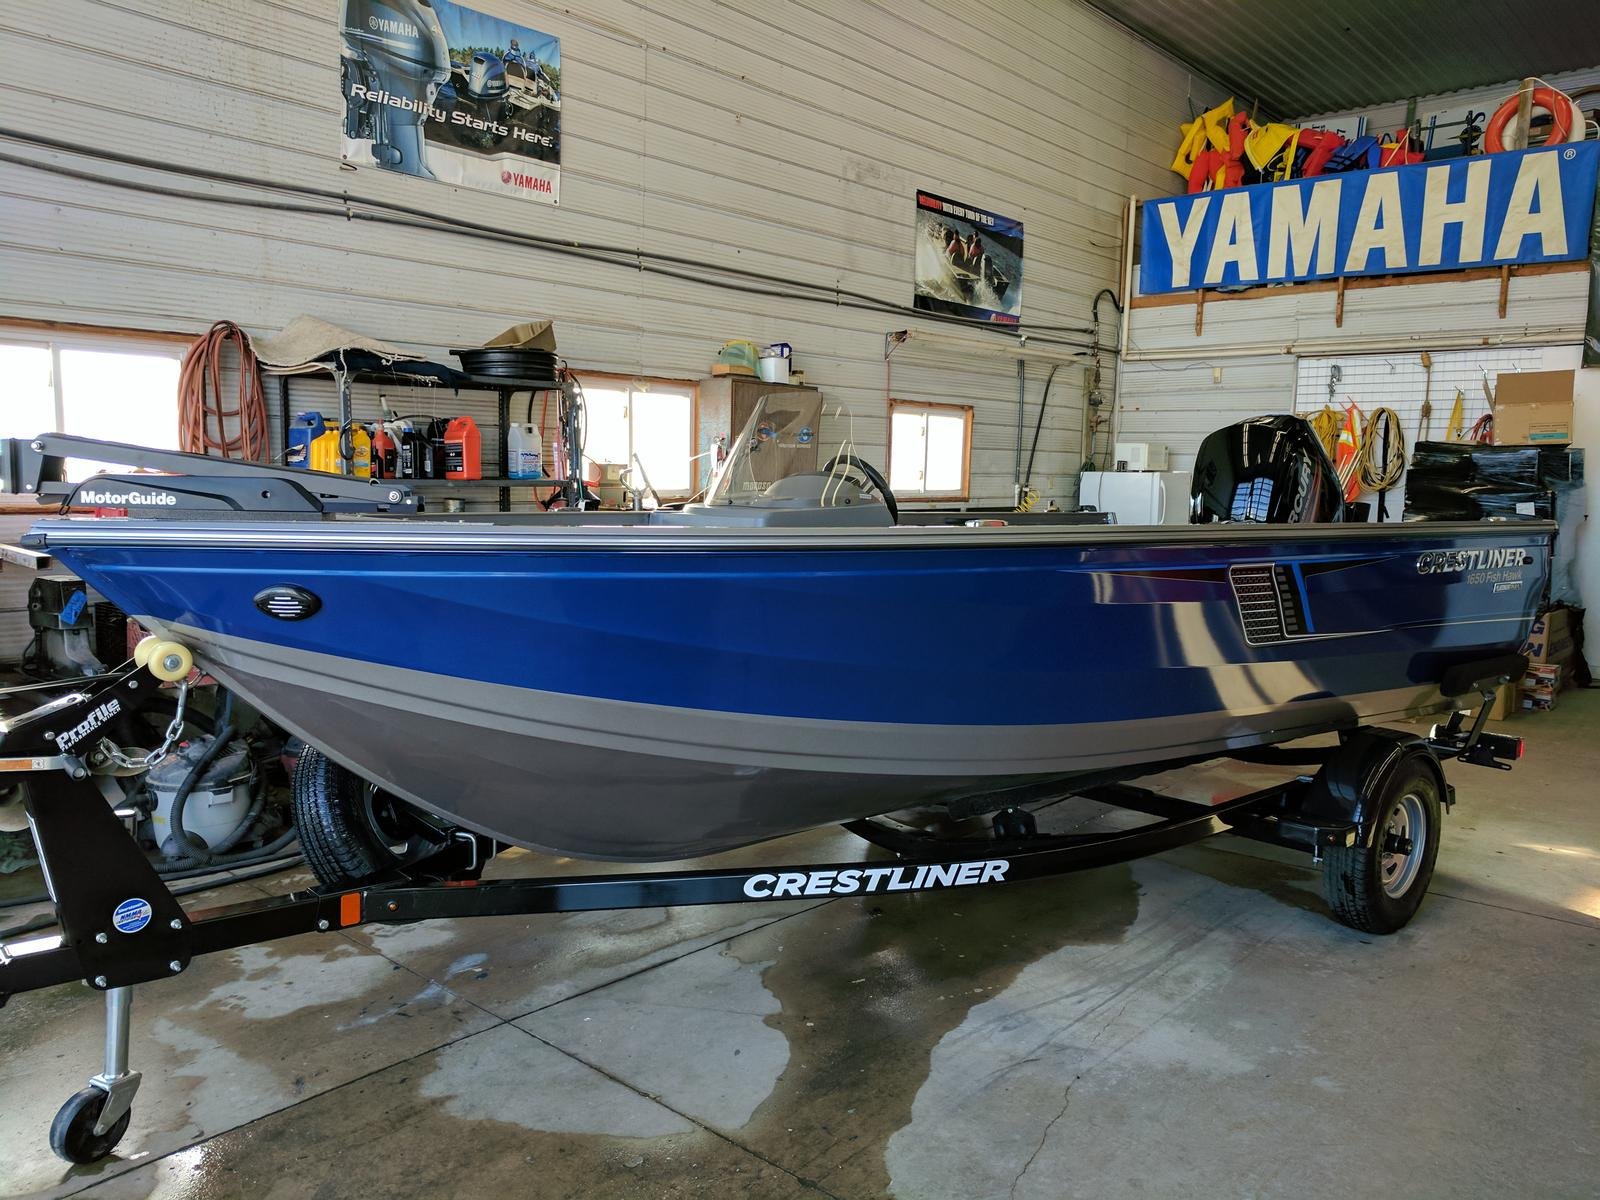 2017 crestliner 1650 fish hawk sc for sale in grand bend on rh swmarineservices com Automotive Wiring Harness Wiring Harness Terminals and Connectors